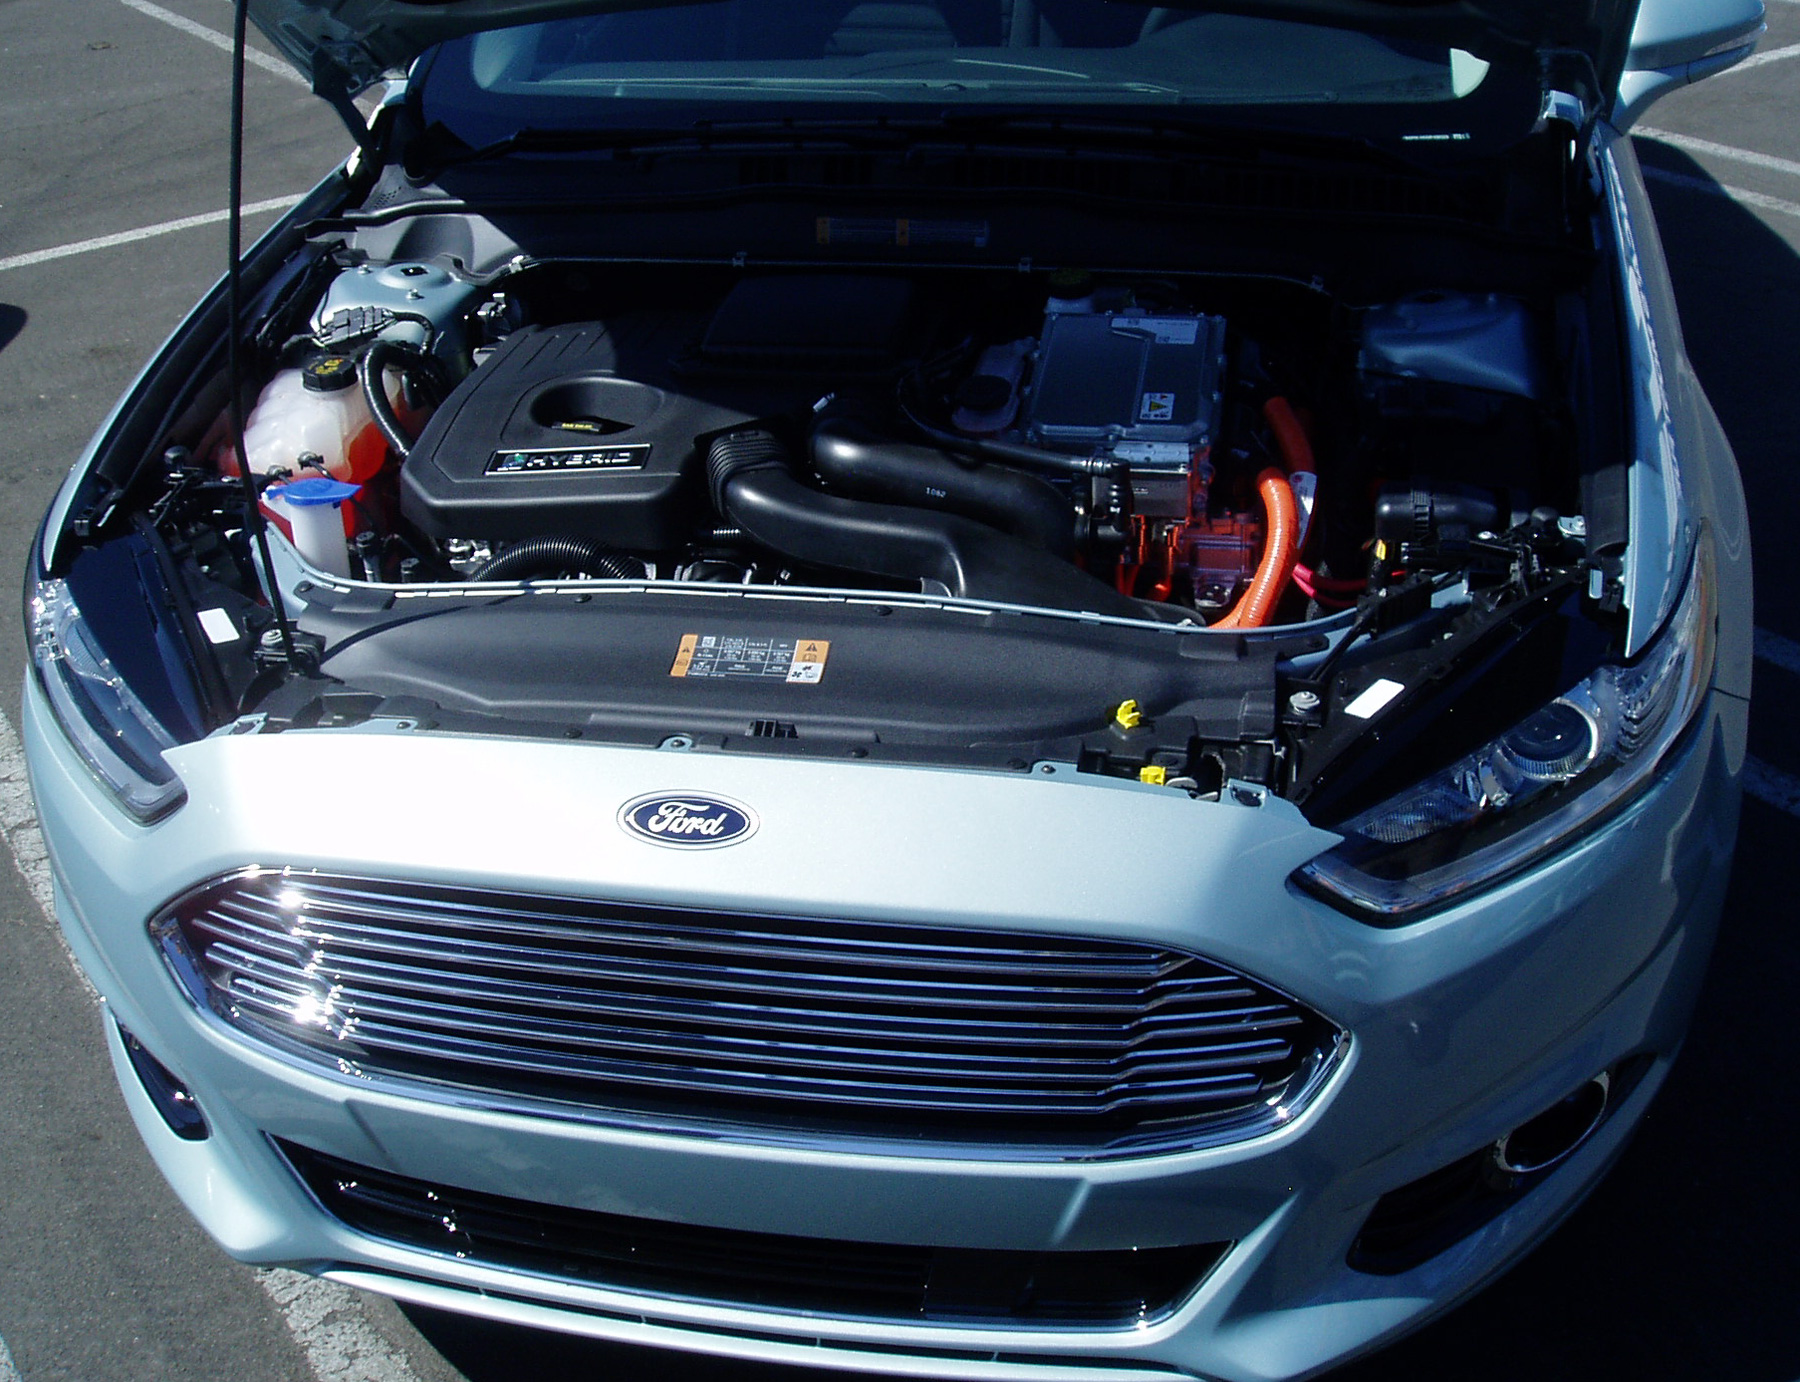 2017 Ford Fusion Engine Compartment